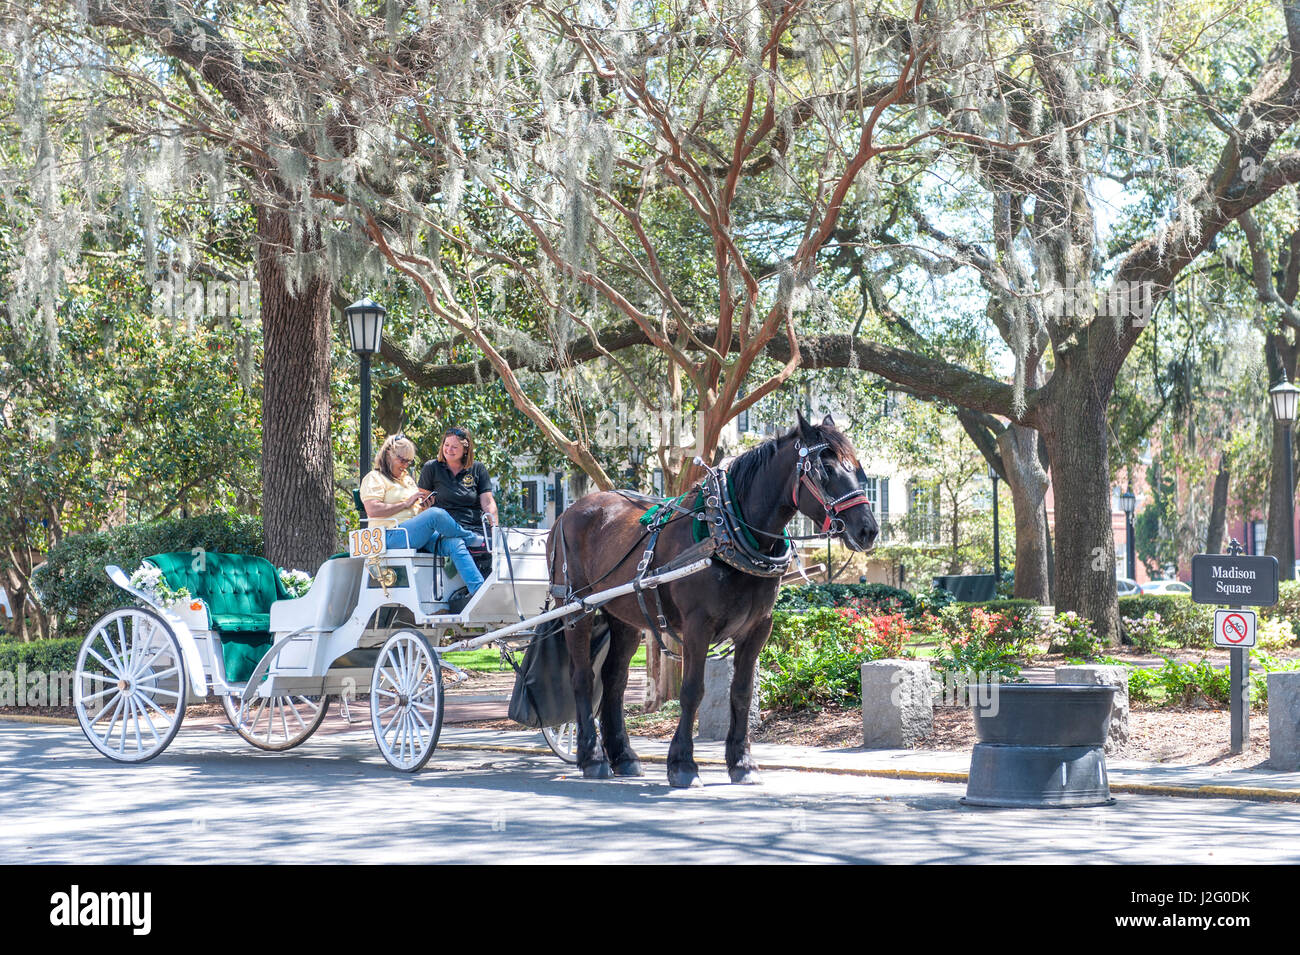 Savannah Georgia Horse Stock Photos Savannah Georgia Horse Stock